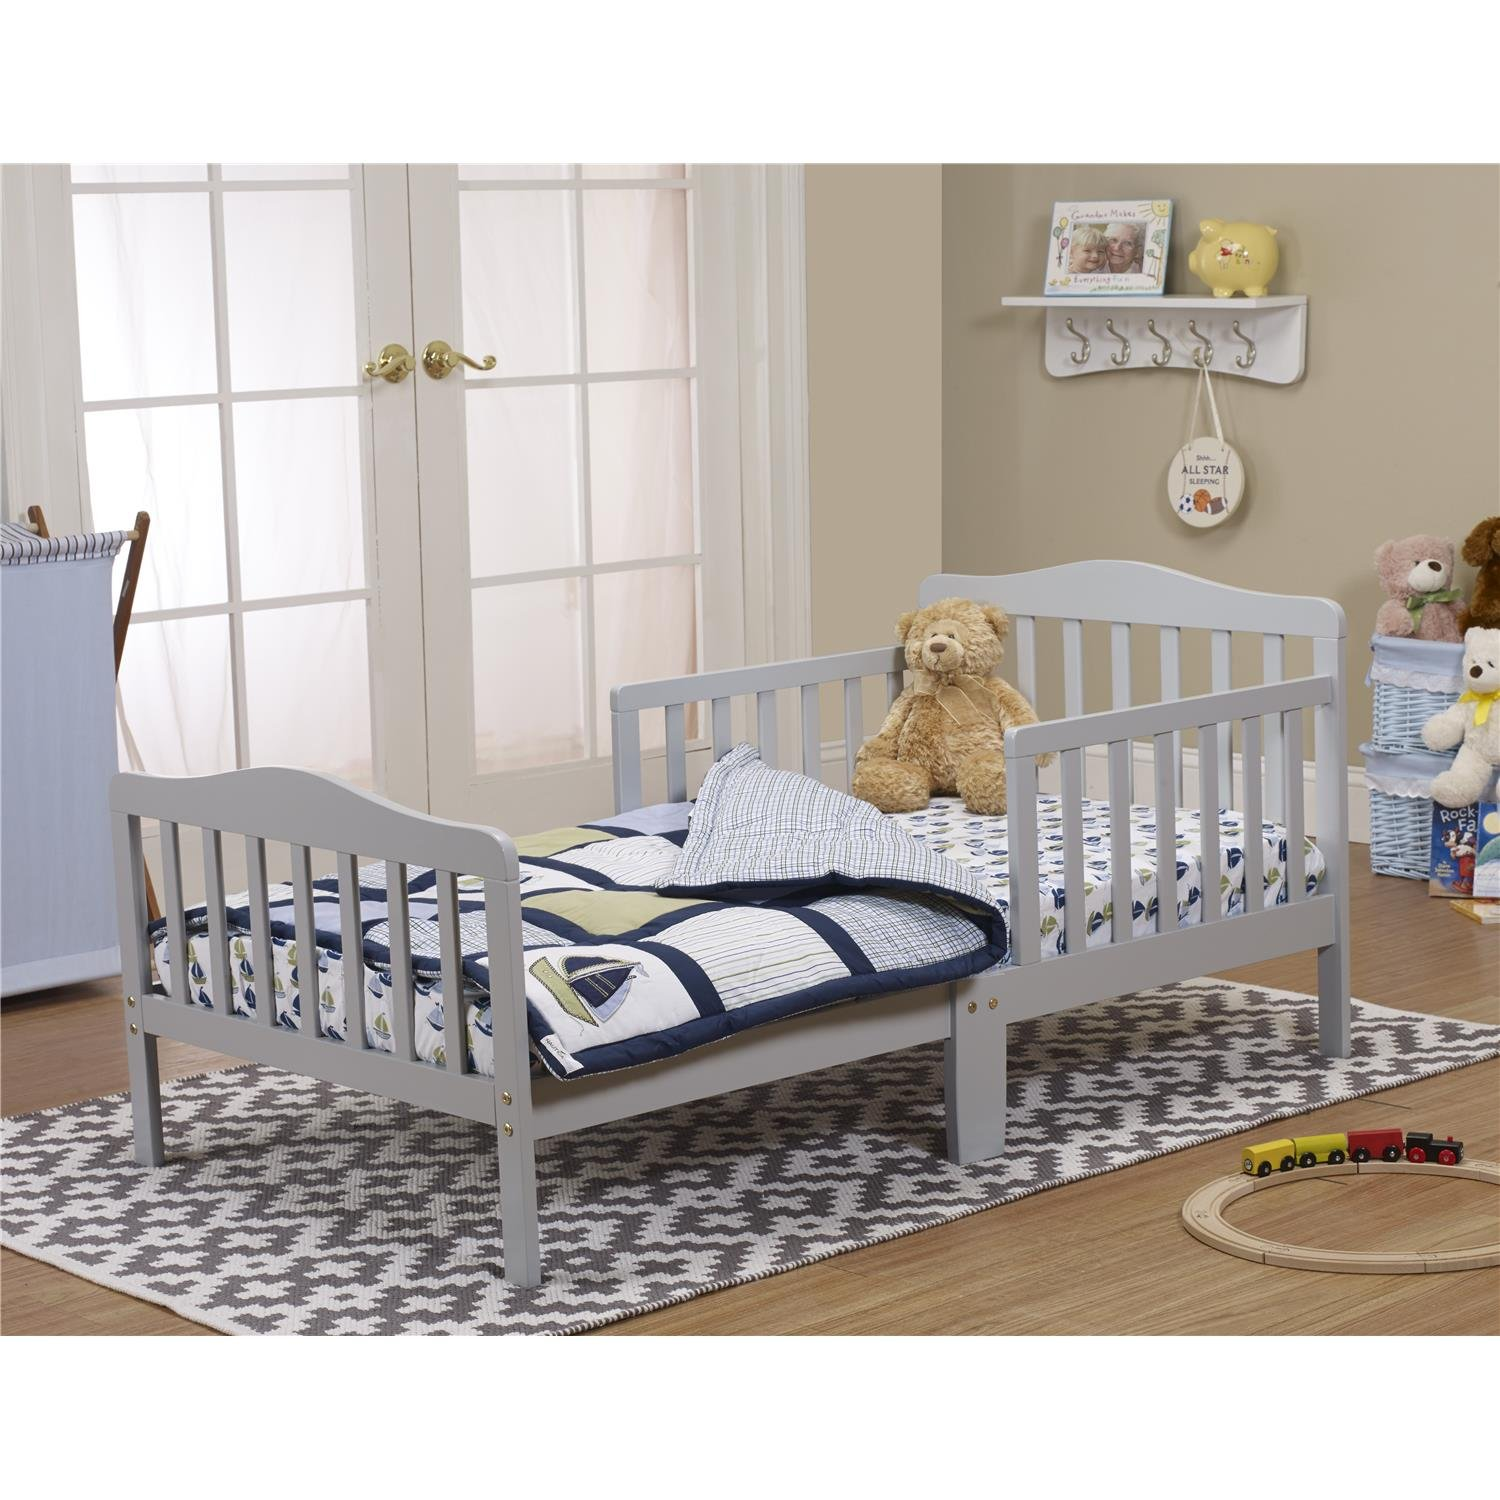 s natural en by architonic beds kids rafa from rtoddlerbed r rtoddlerbednatural toddler children product bed b